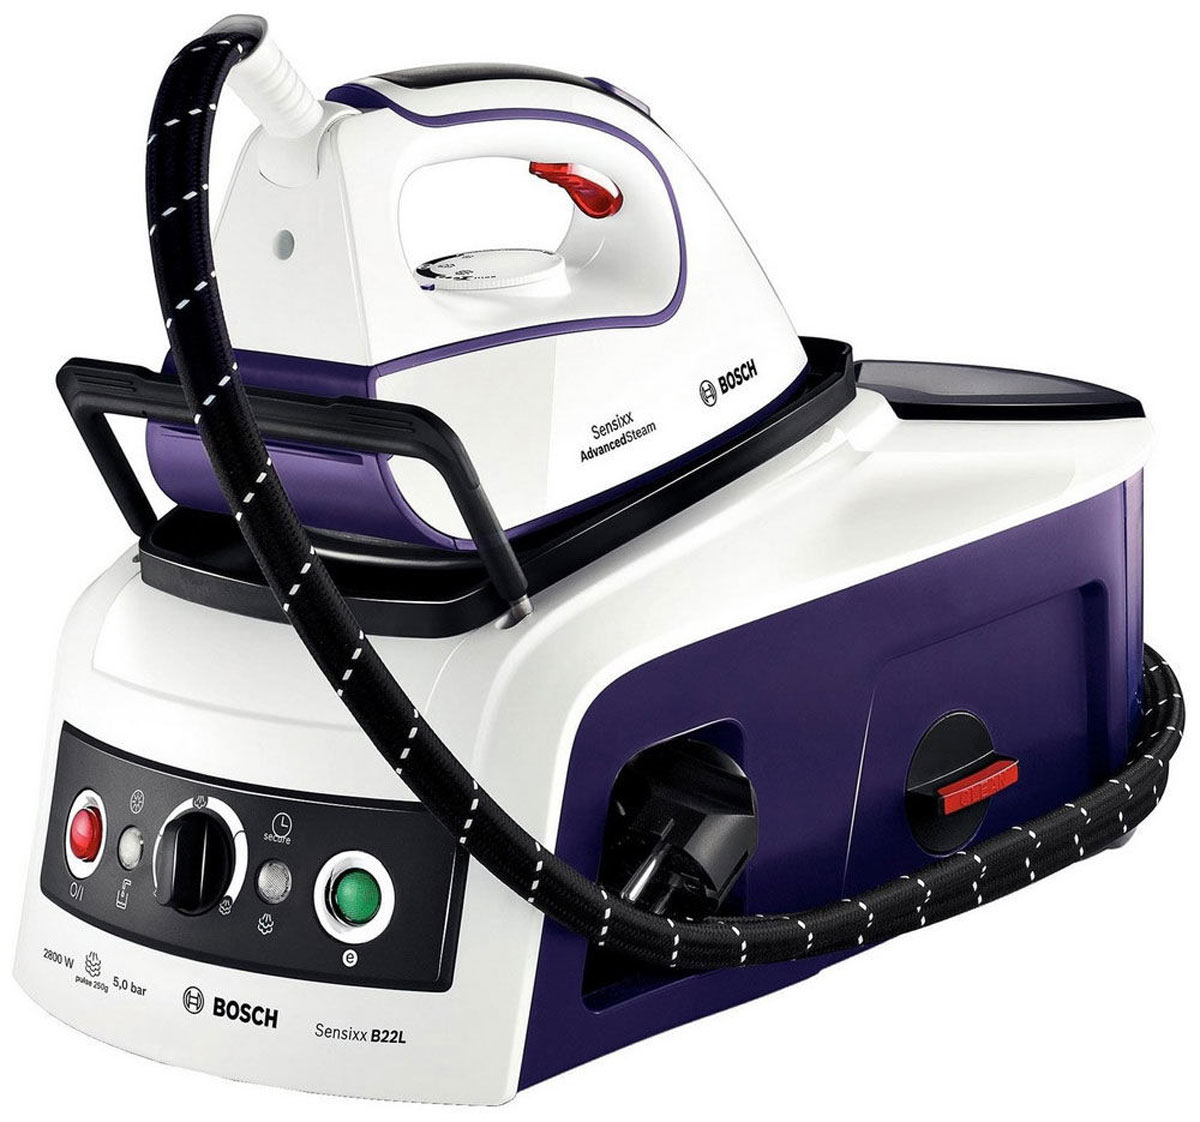 Bosch TDS2241, White Purple парогенератор - Утюги